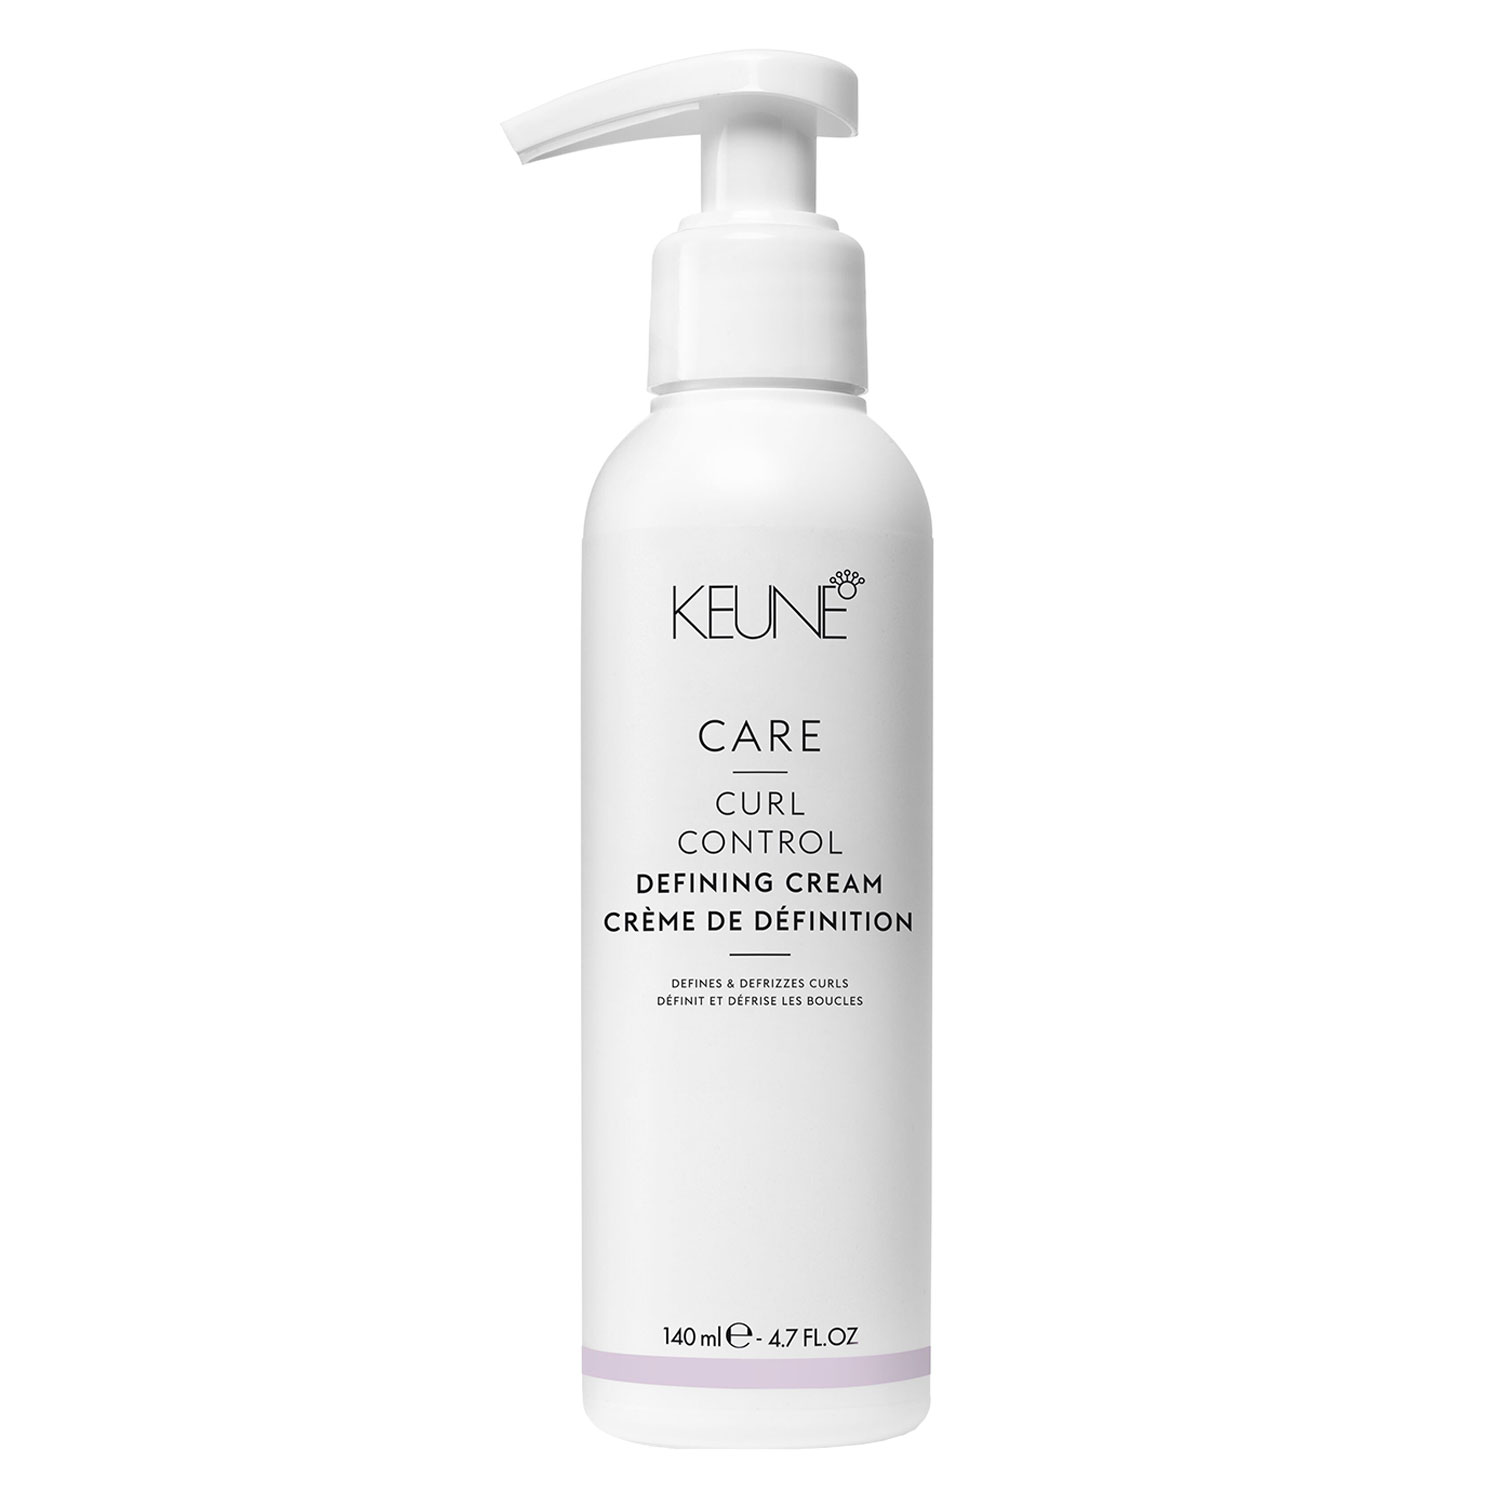 Keune Care - Curl Control Defining Cream